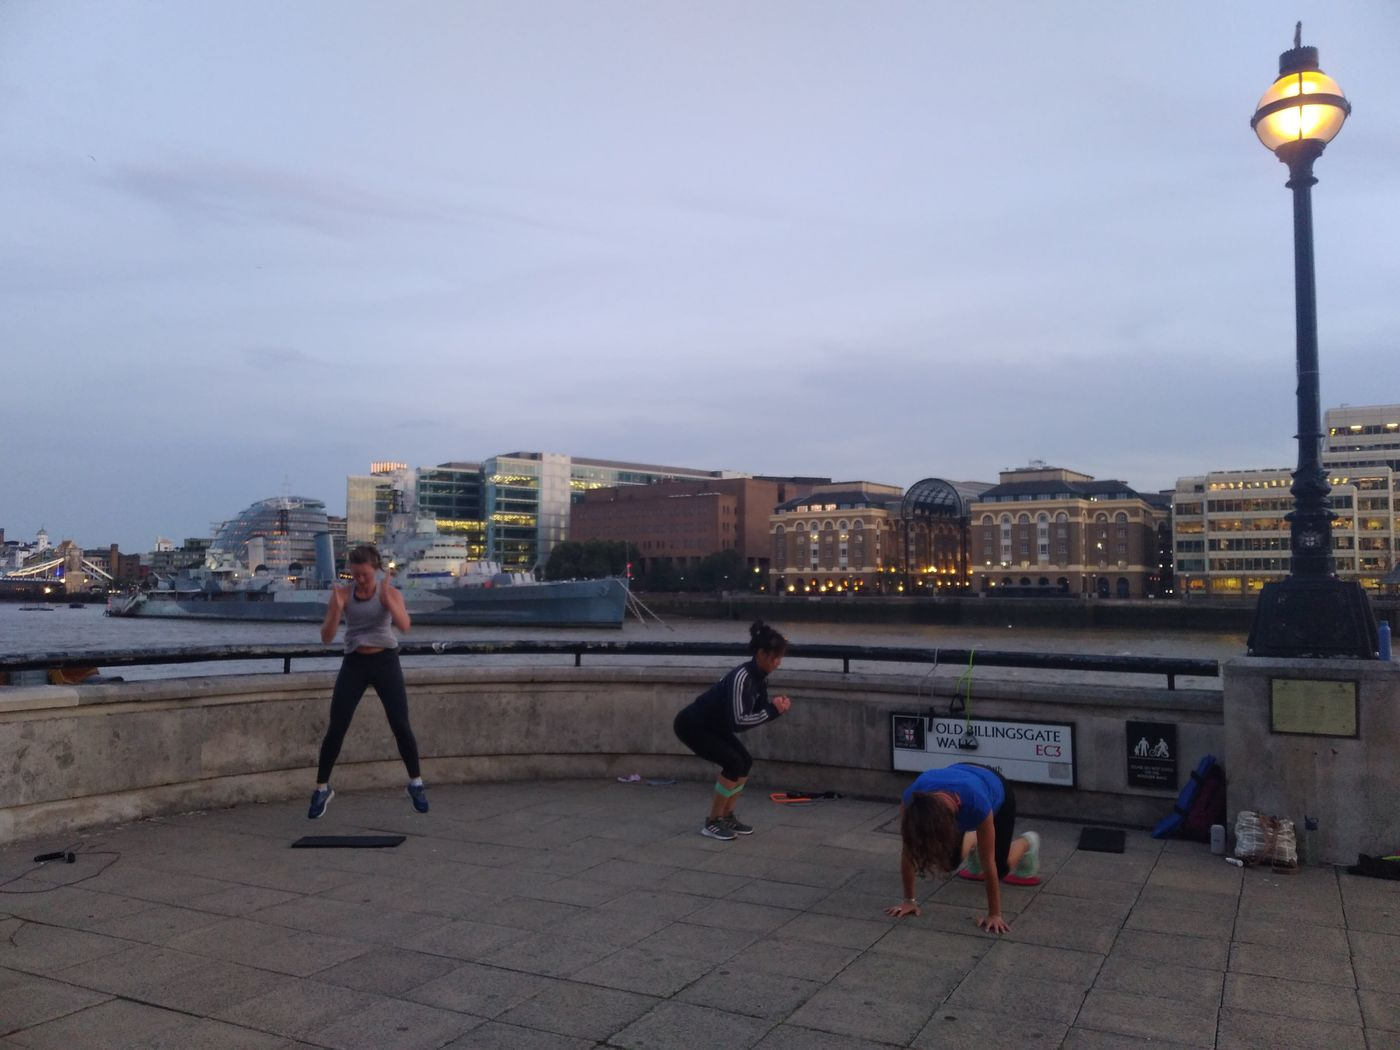 Sundown circuits by the river! Well done for powering through ladies 👊